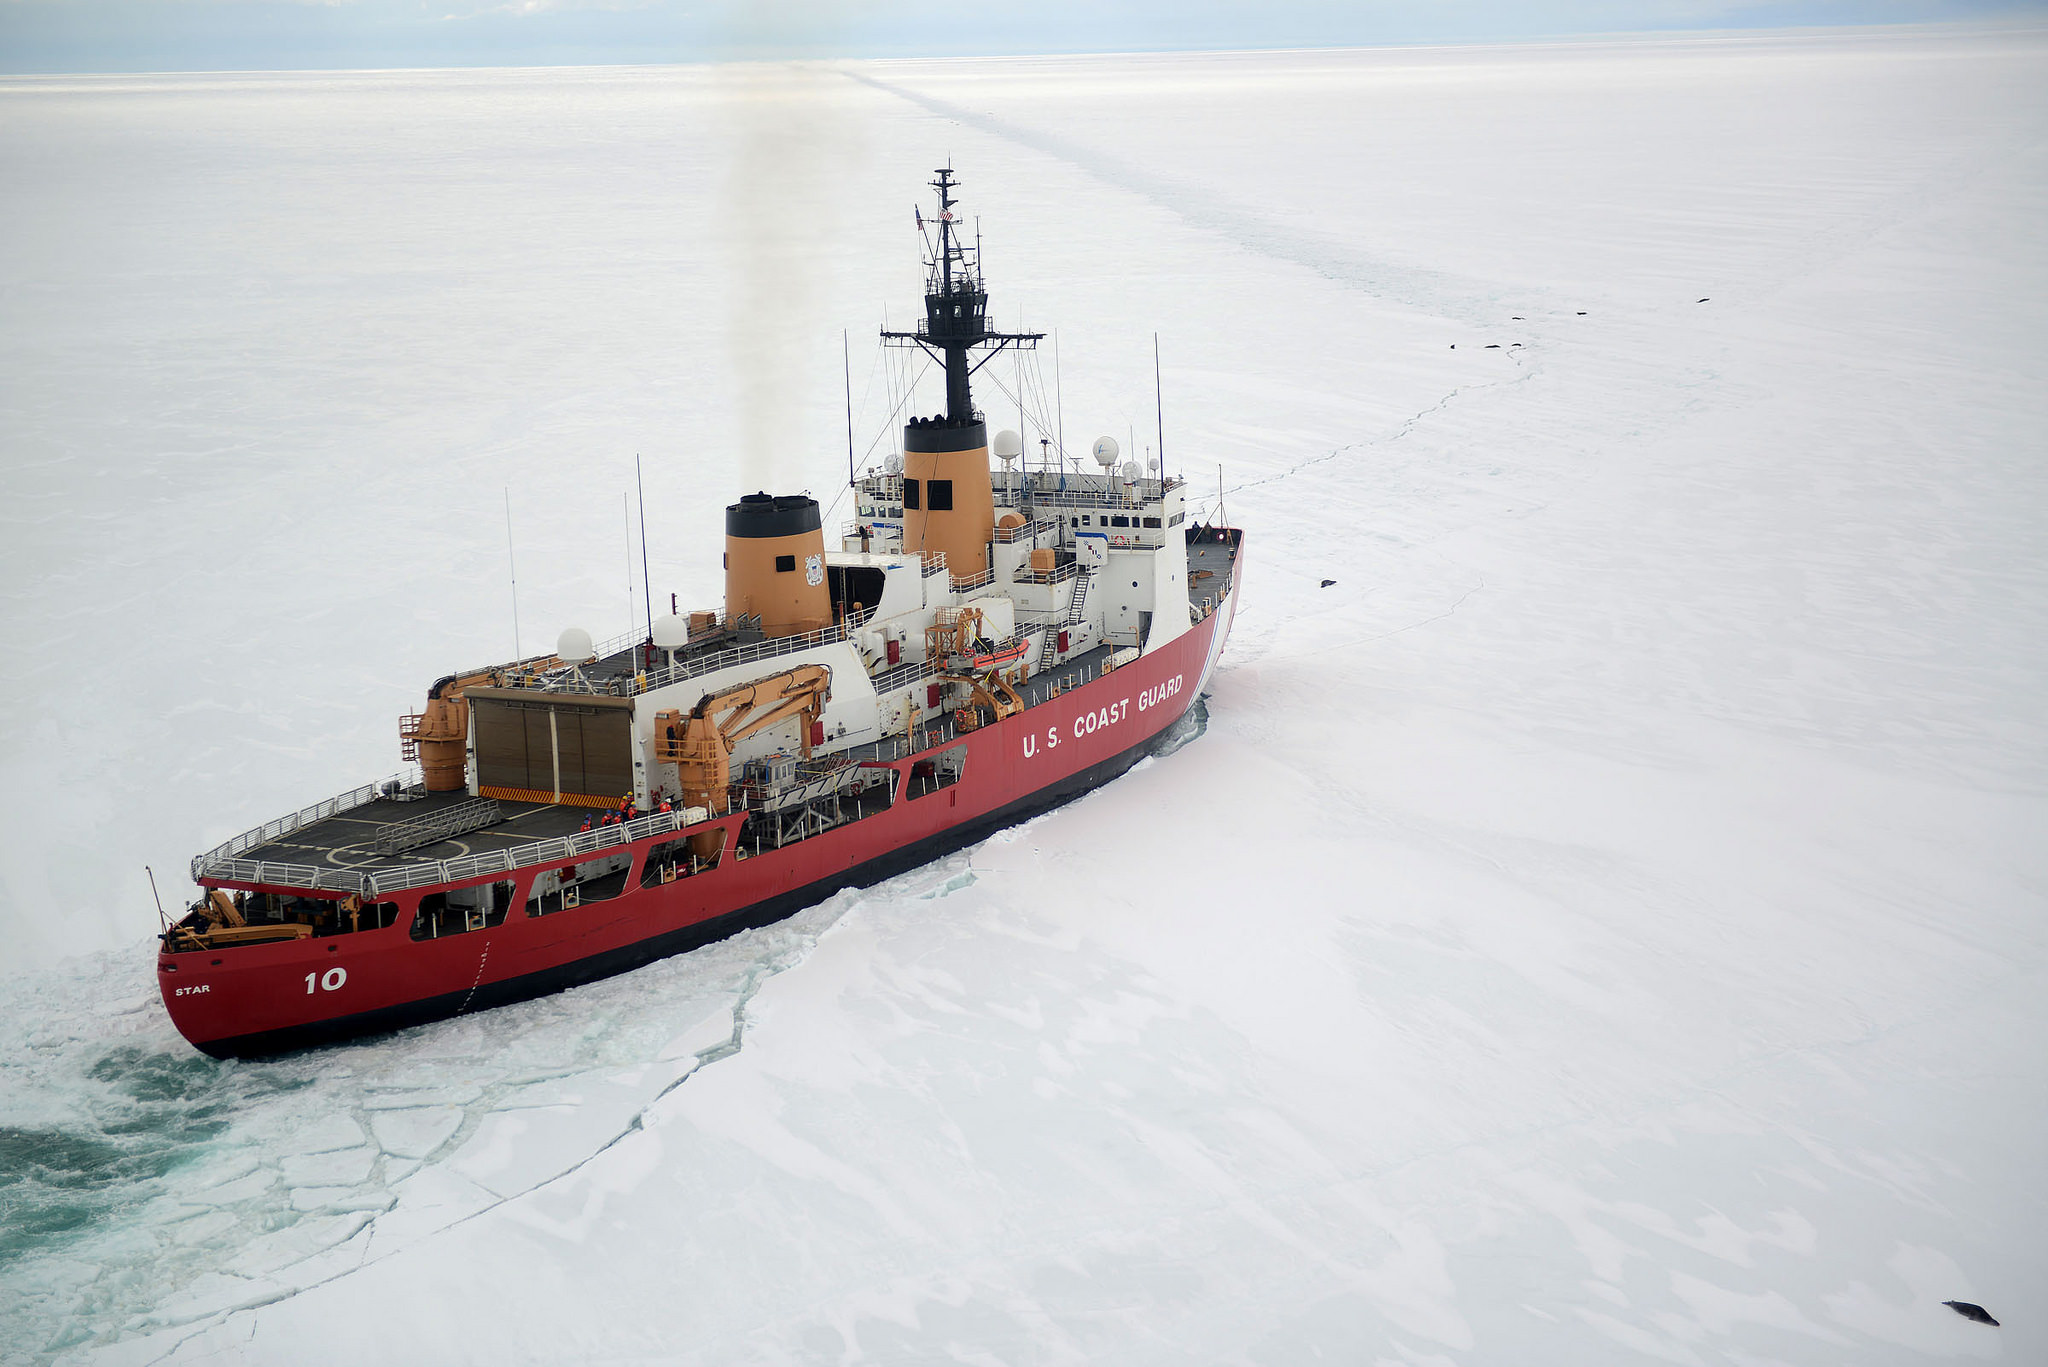 1250e20a5f8 The Coast Guard Cutter Polar Star cuts through Antarctic ice in the Ross  Sea to create a navigation channel for supply ships, Jan. 16, 2017.